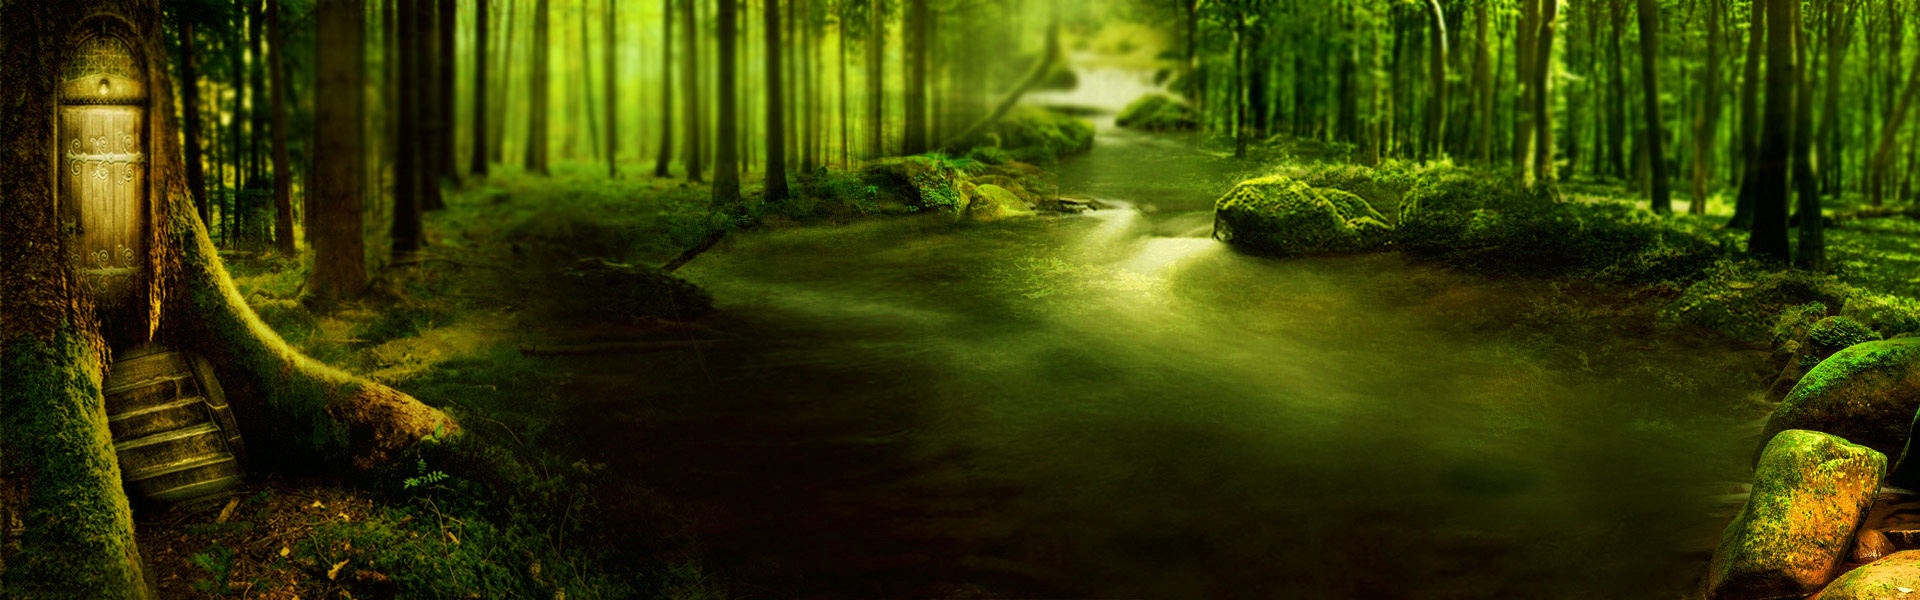 Science Fiction Fantasy Forest Green Background Dream Science Fiction Background Image For